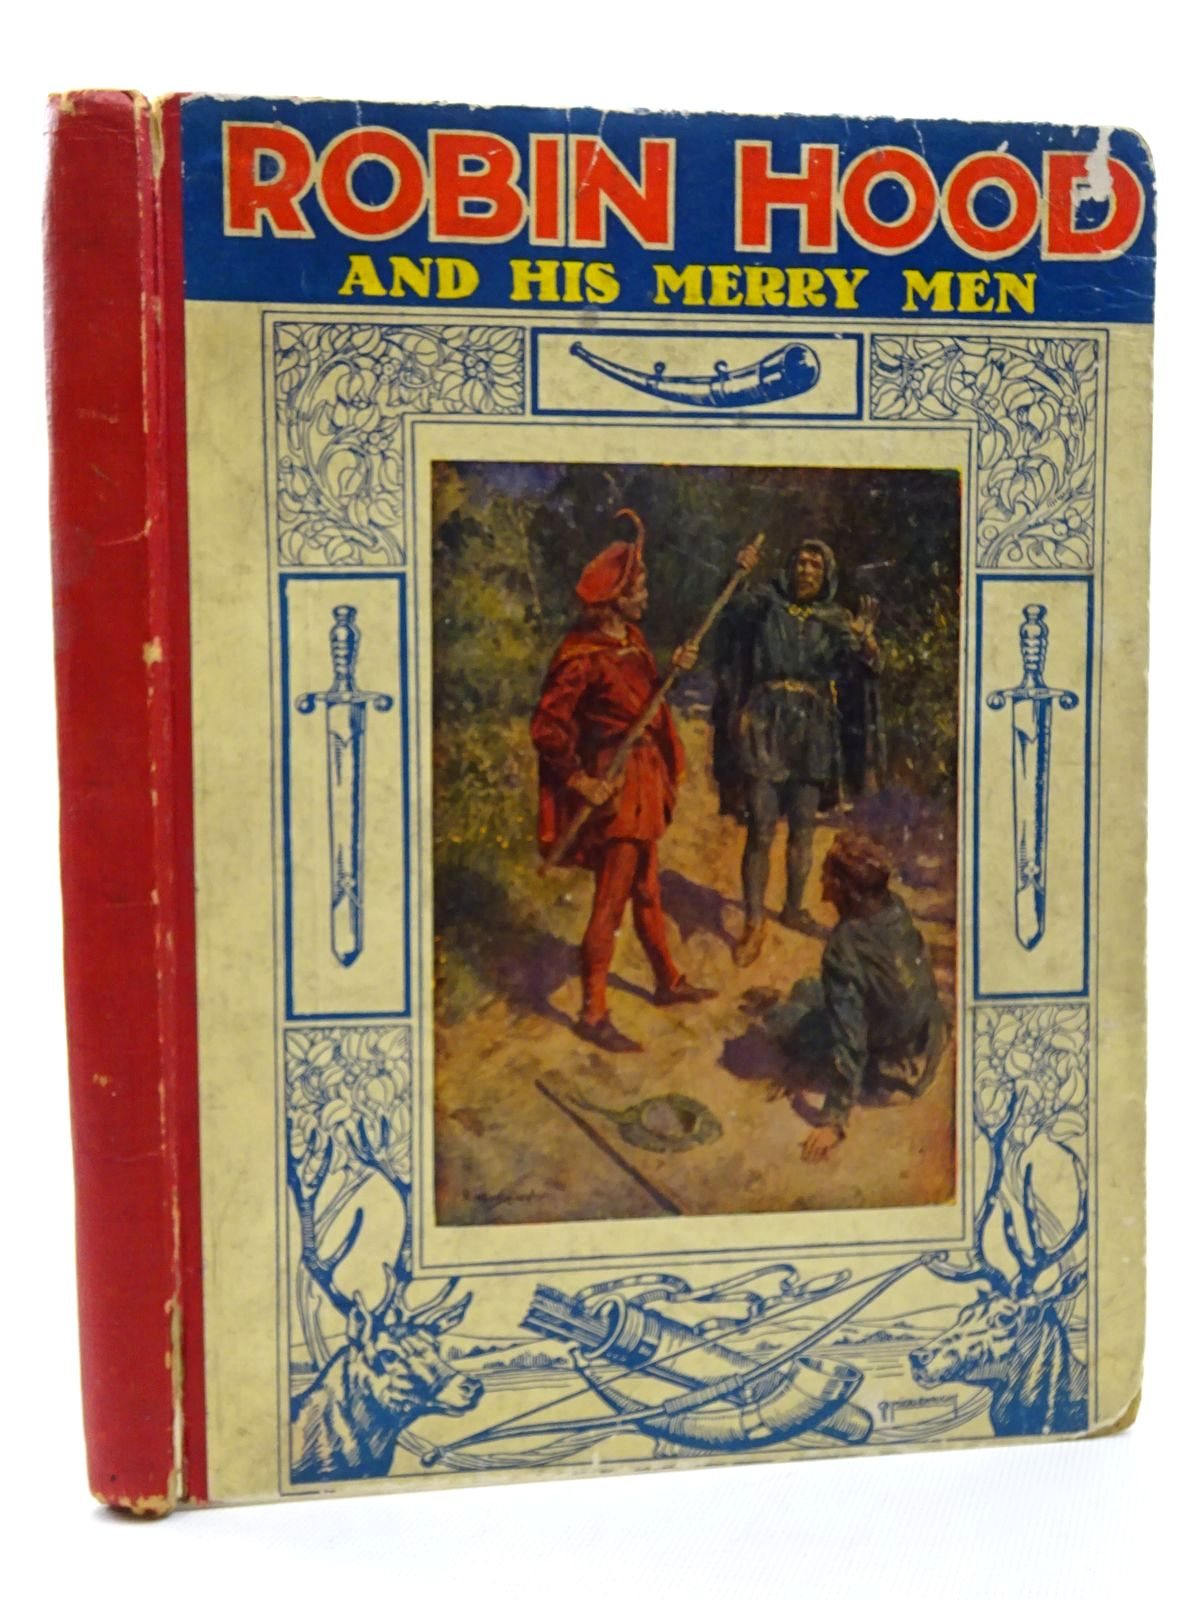 Photo of ROBIN HOOD AND HIS MERRY MEN written by Sterling, Sara Hawks illustrated by Wheelwright, Rowland published by J. Coker & Co. Ltd. (STOCK CODE: 1815999)  for sale by Stella & Rose's Books